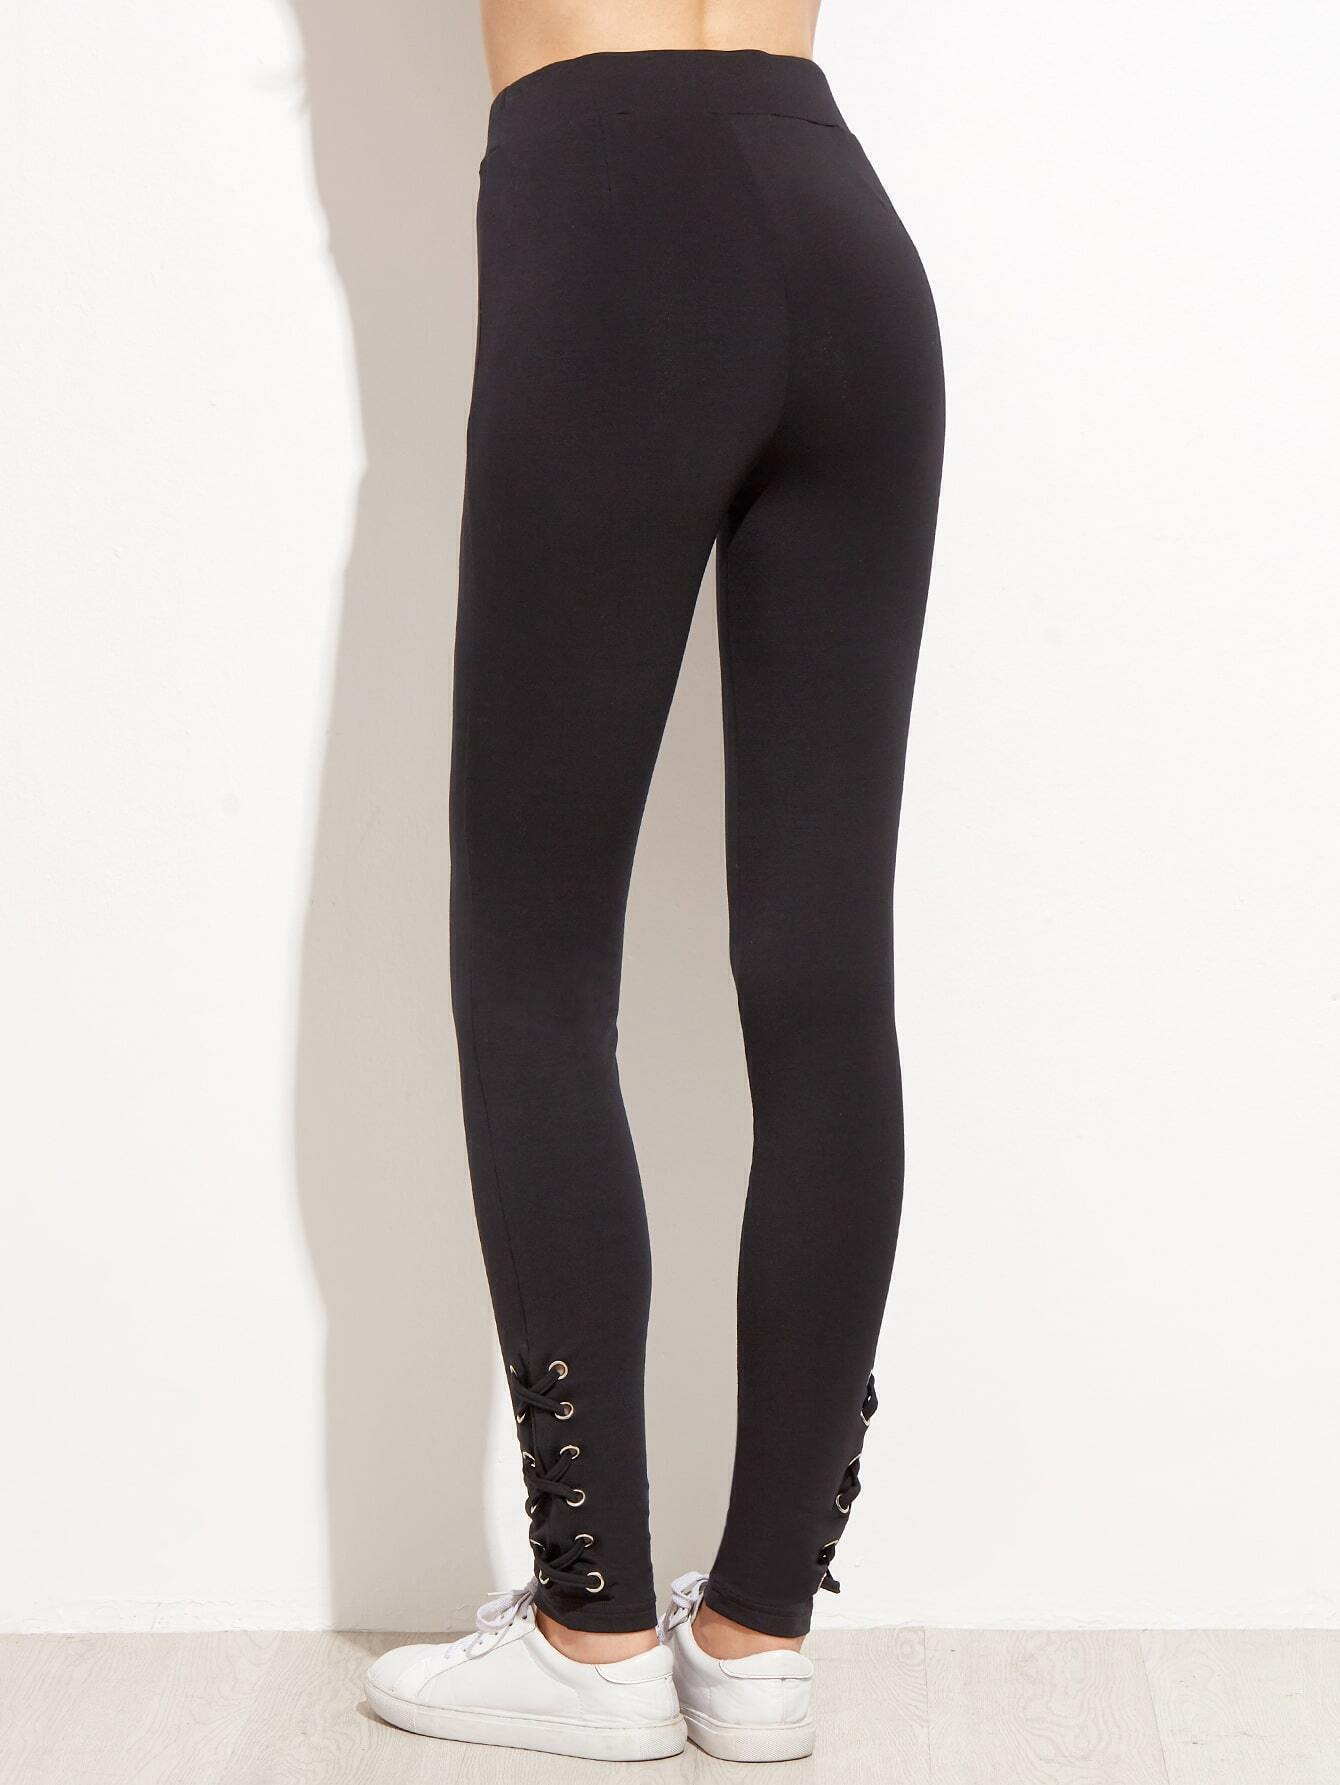 a70096a48c9195 Black Drawstring Waist Eyelet Lace Up Side Leggings EmmaCloth-Women ...